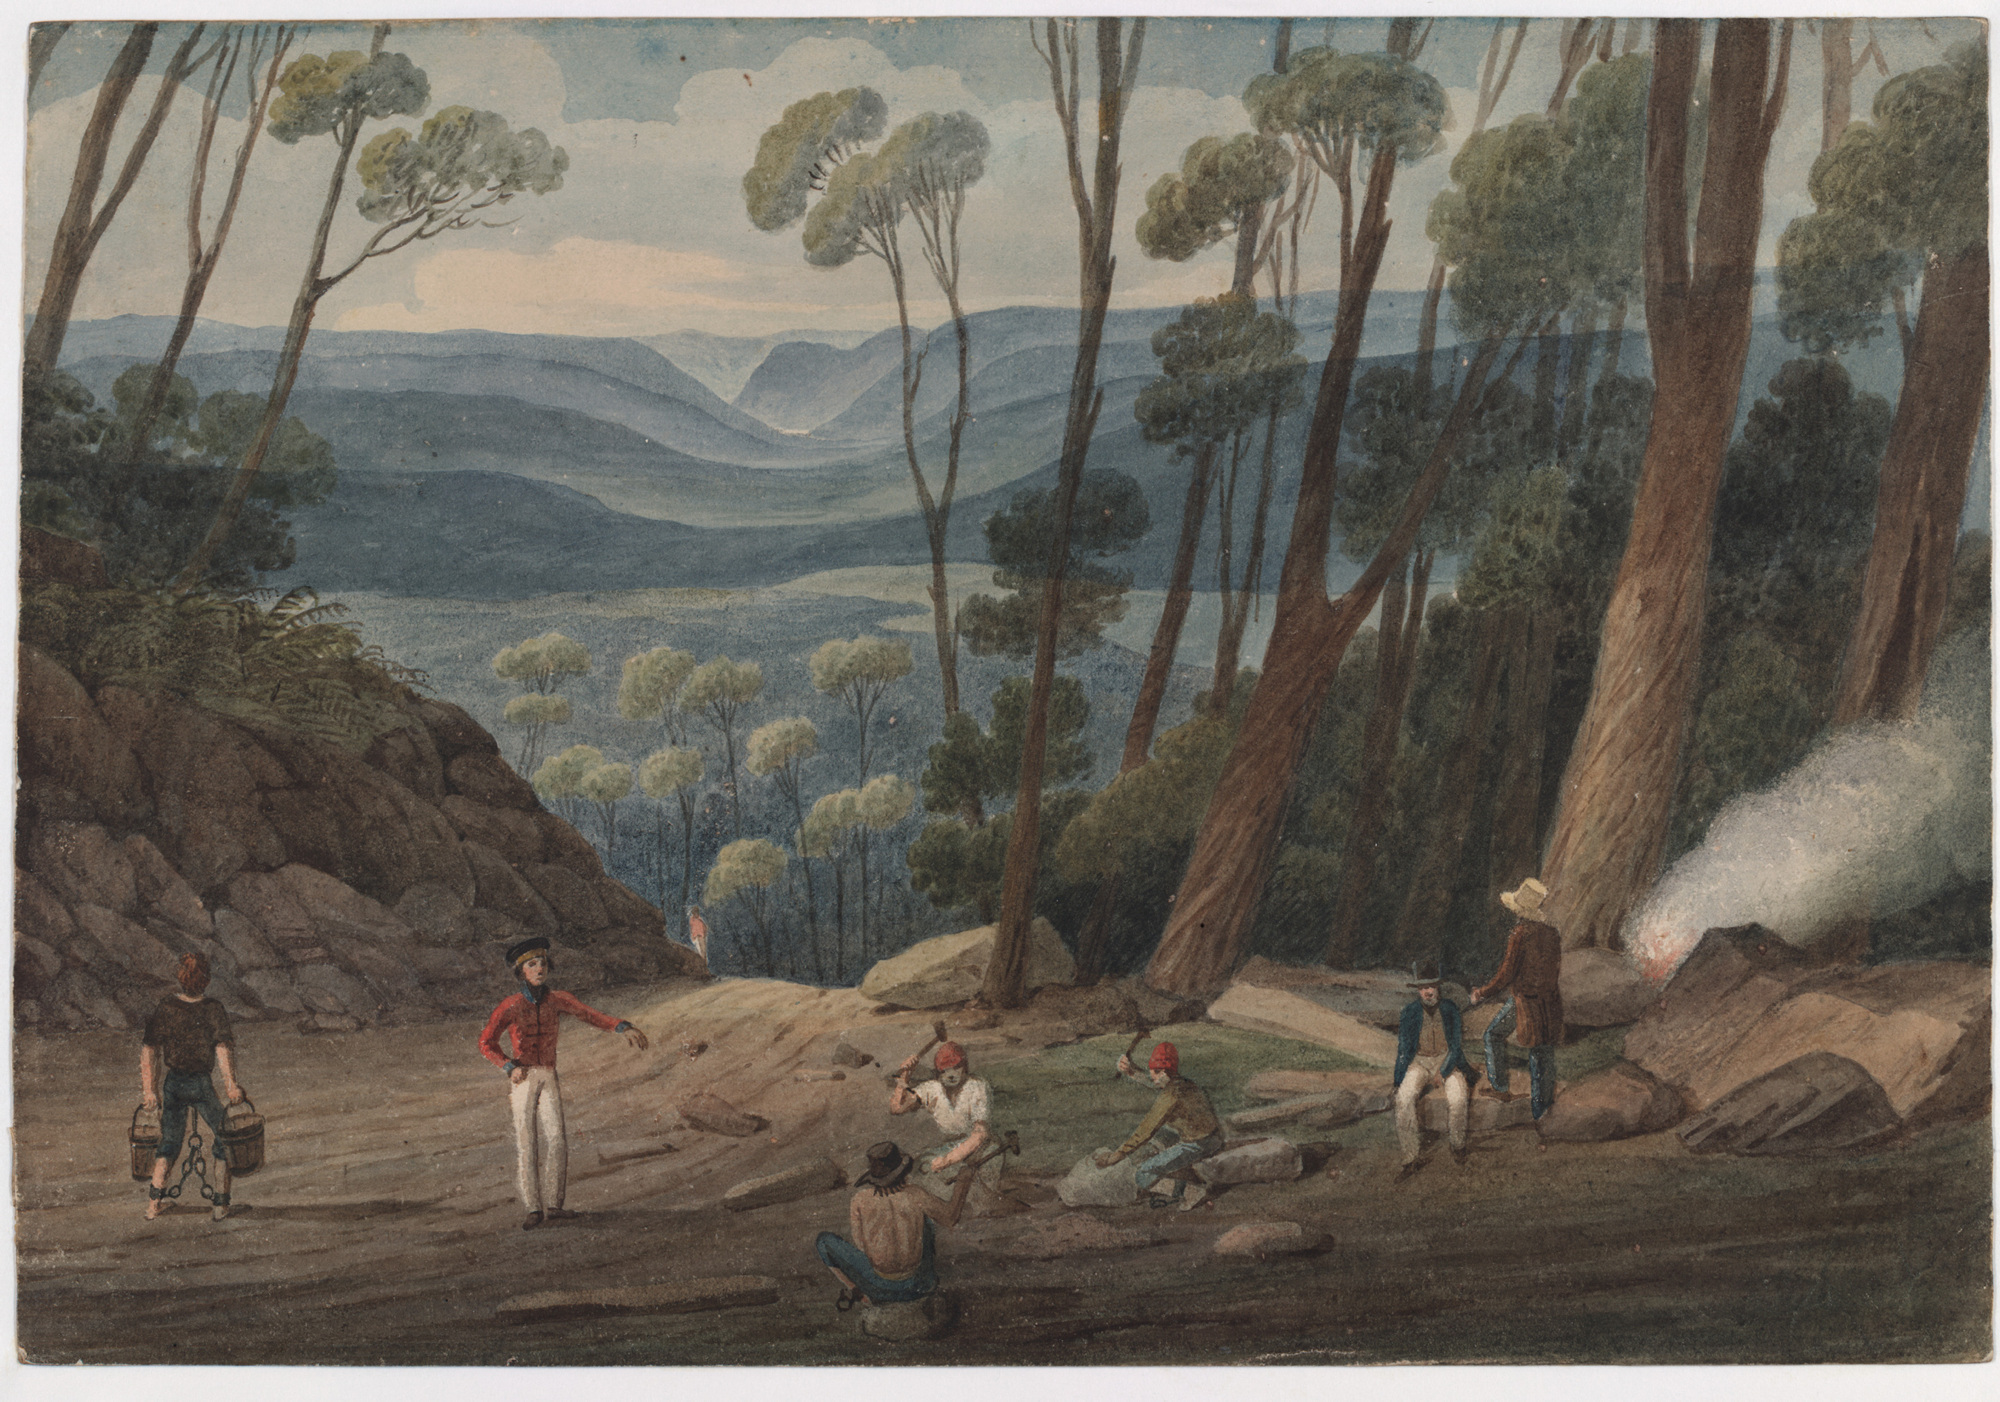 Watercolour painting of landscape with men in foreground working and view of distant valley and hills through trees, with smoke from fire to right.